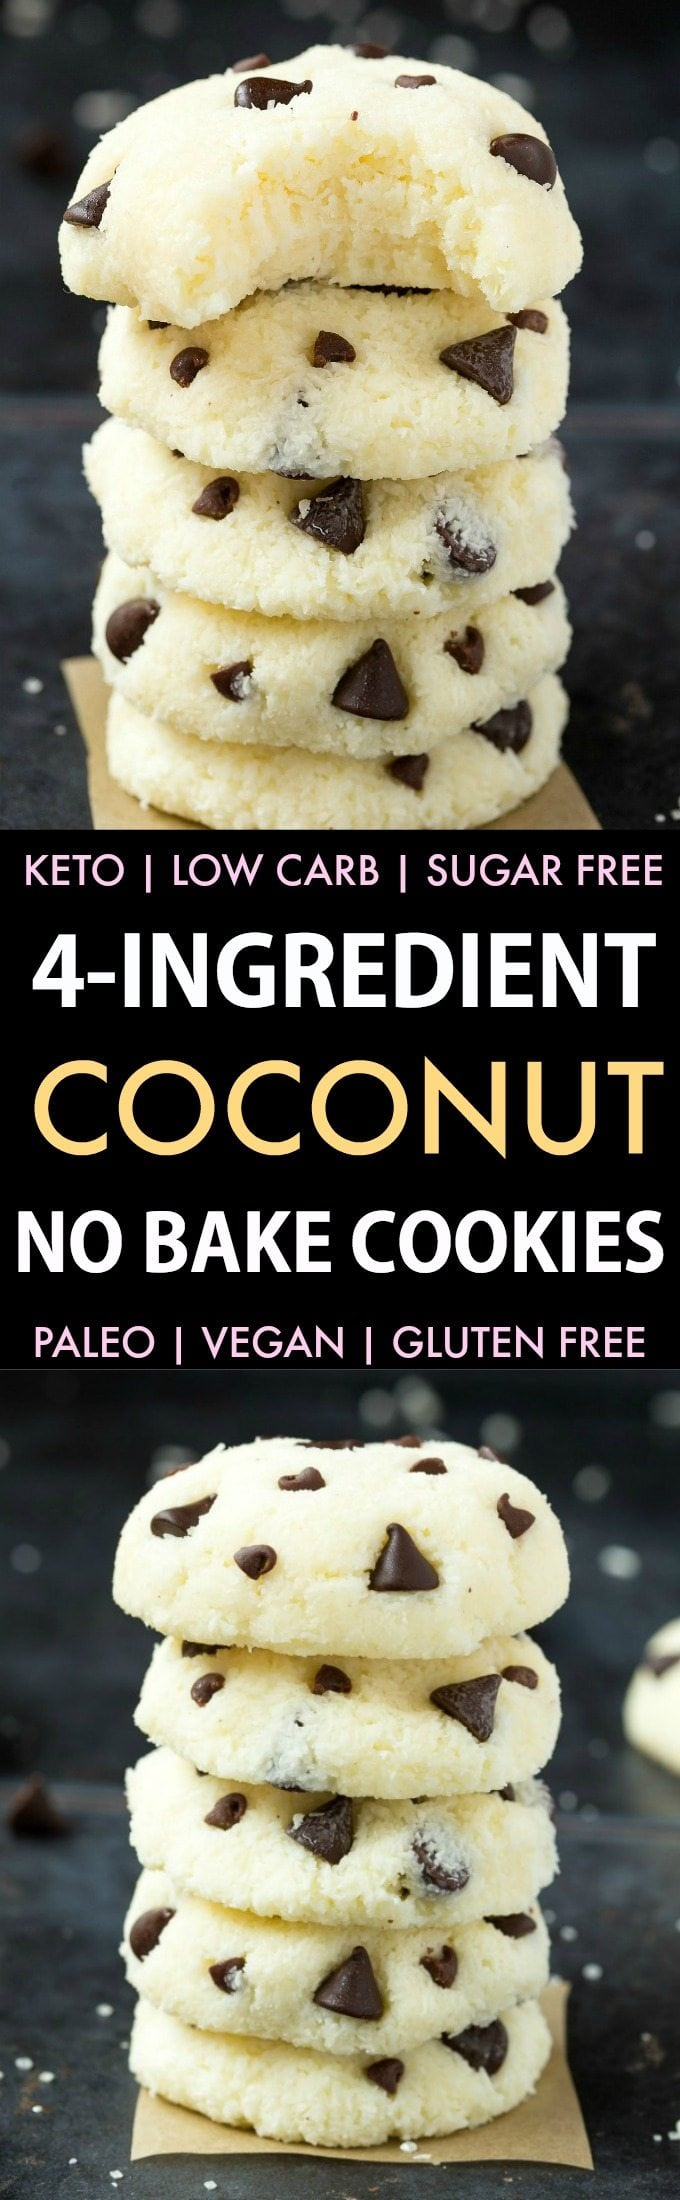 4 Ingredient No Bake Coconut Cookies (Keto, Paleo, Vegan, Sugar Free)- An easy, 5-minute recipe for soft coconut cookies! No condensed milk, sugar, or dairy needed and super low carb. #lowcarbrecipe #nobakecookies #ketodessert #lowcarb #sugarfree | Recipe on thebigmansworld.com